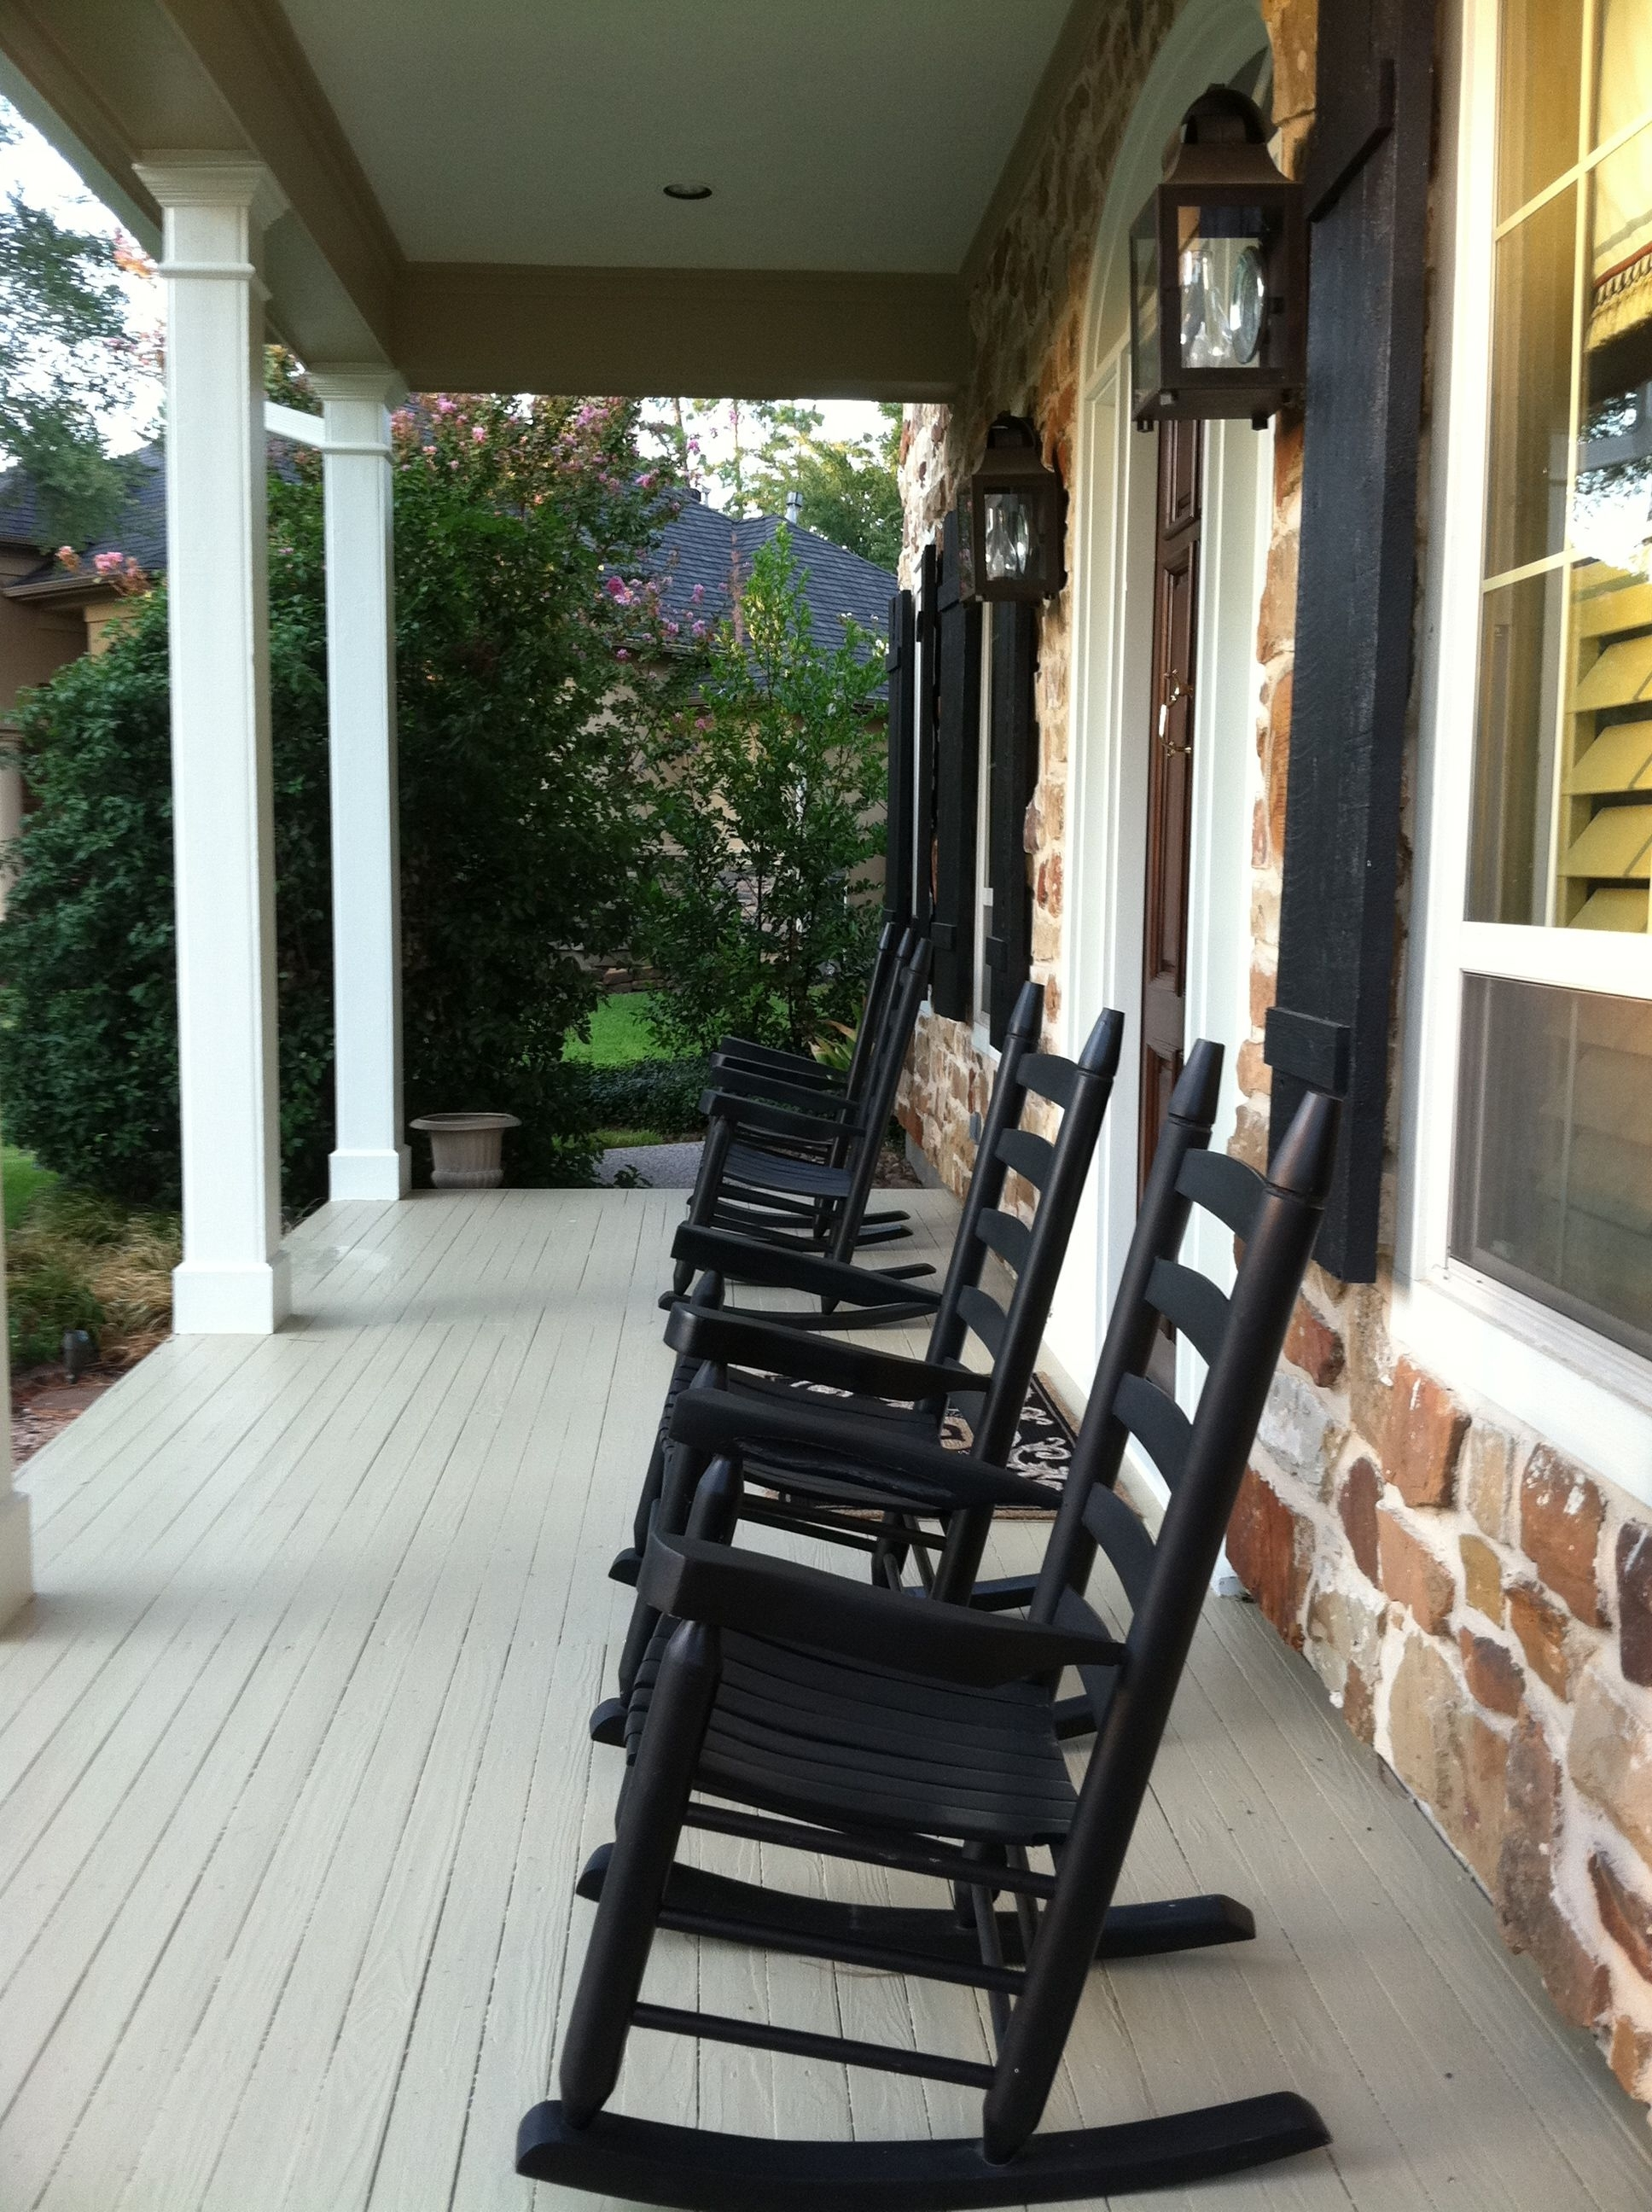 Favorite Outdoor Rocking Chairs: Outdoor Rocking Chairs Black Porch Within Rocking Chairs For Front Porch (View 10 of 15)